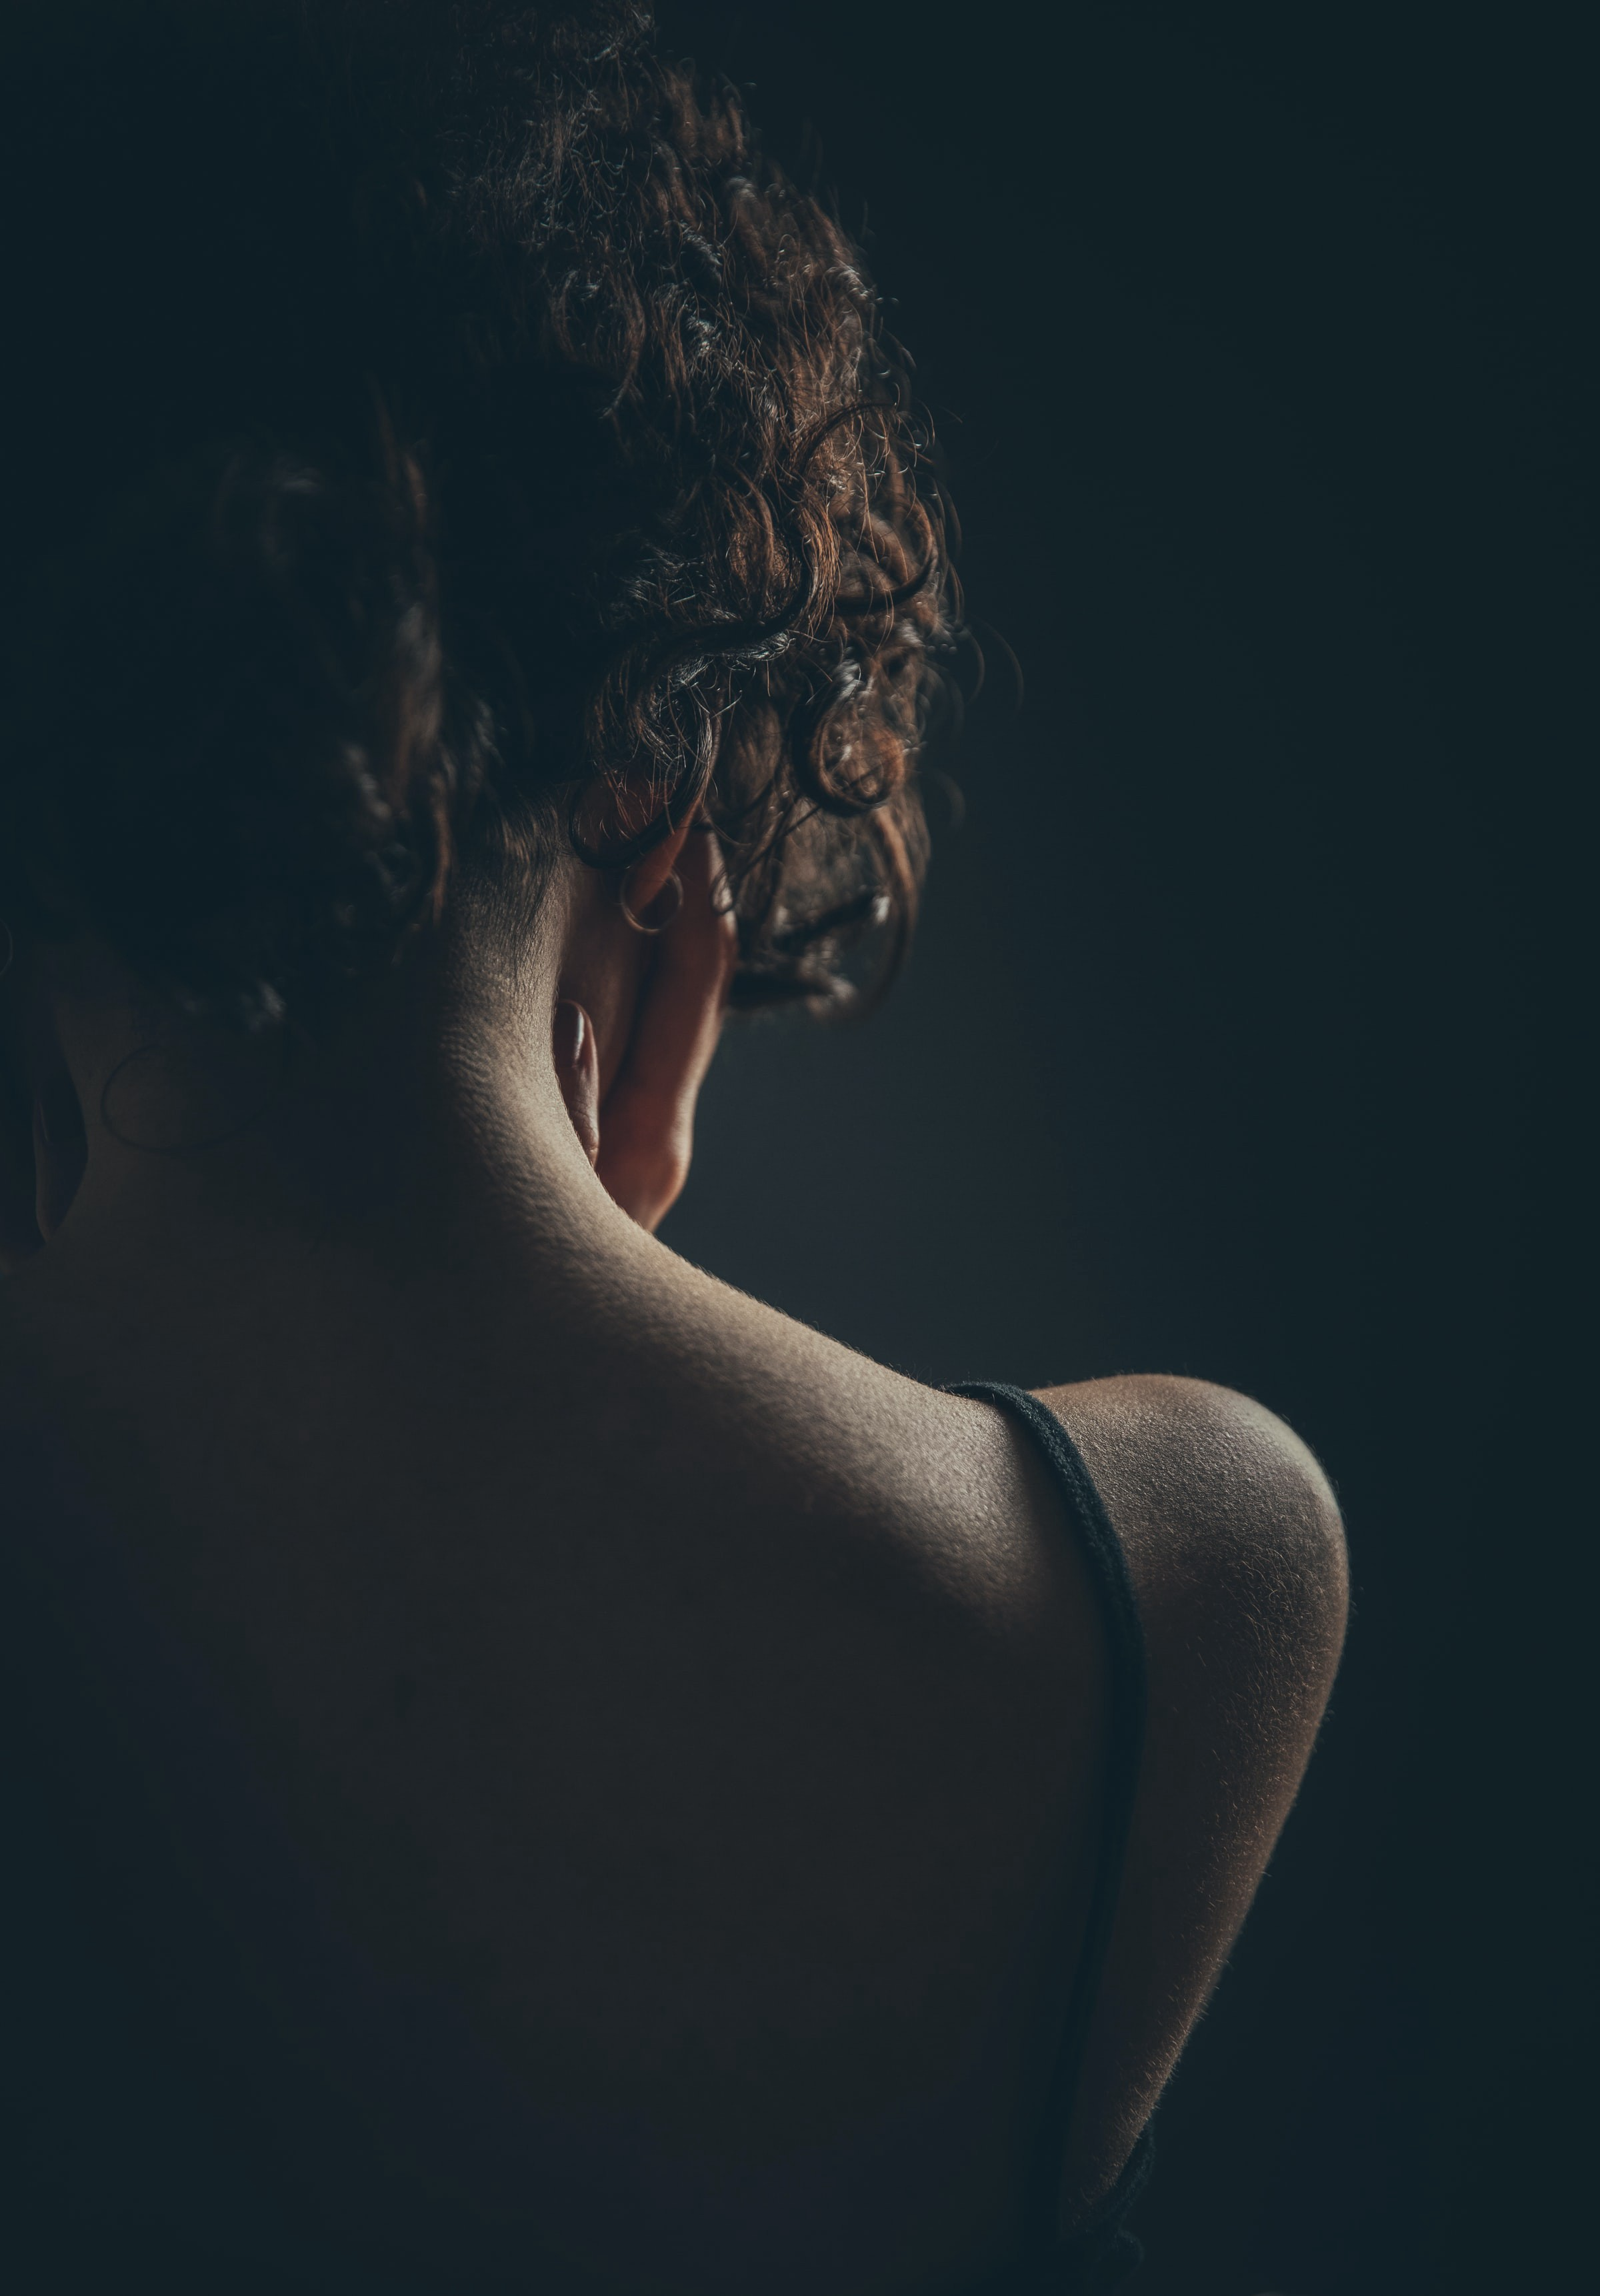 Curly haired woman viewed from over her shoulder, cupping her face in her hands.